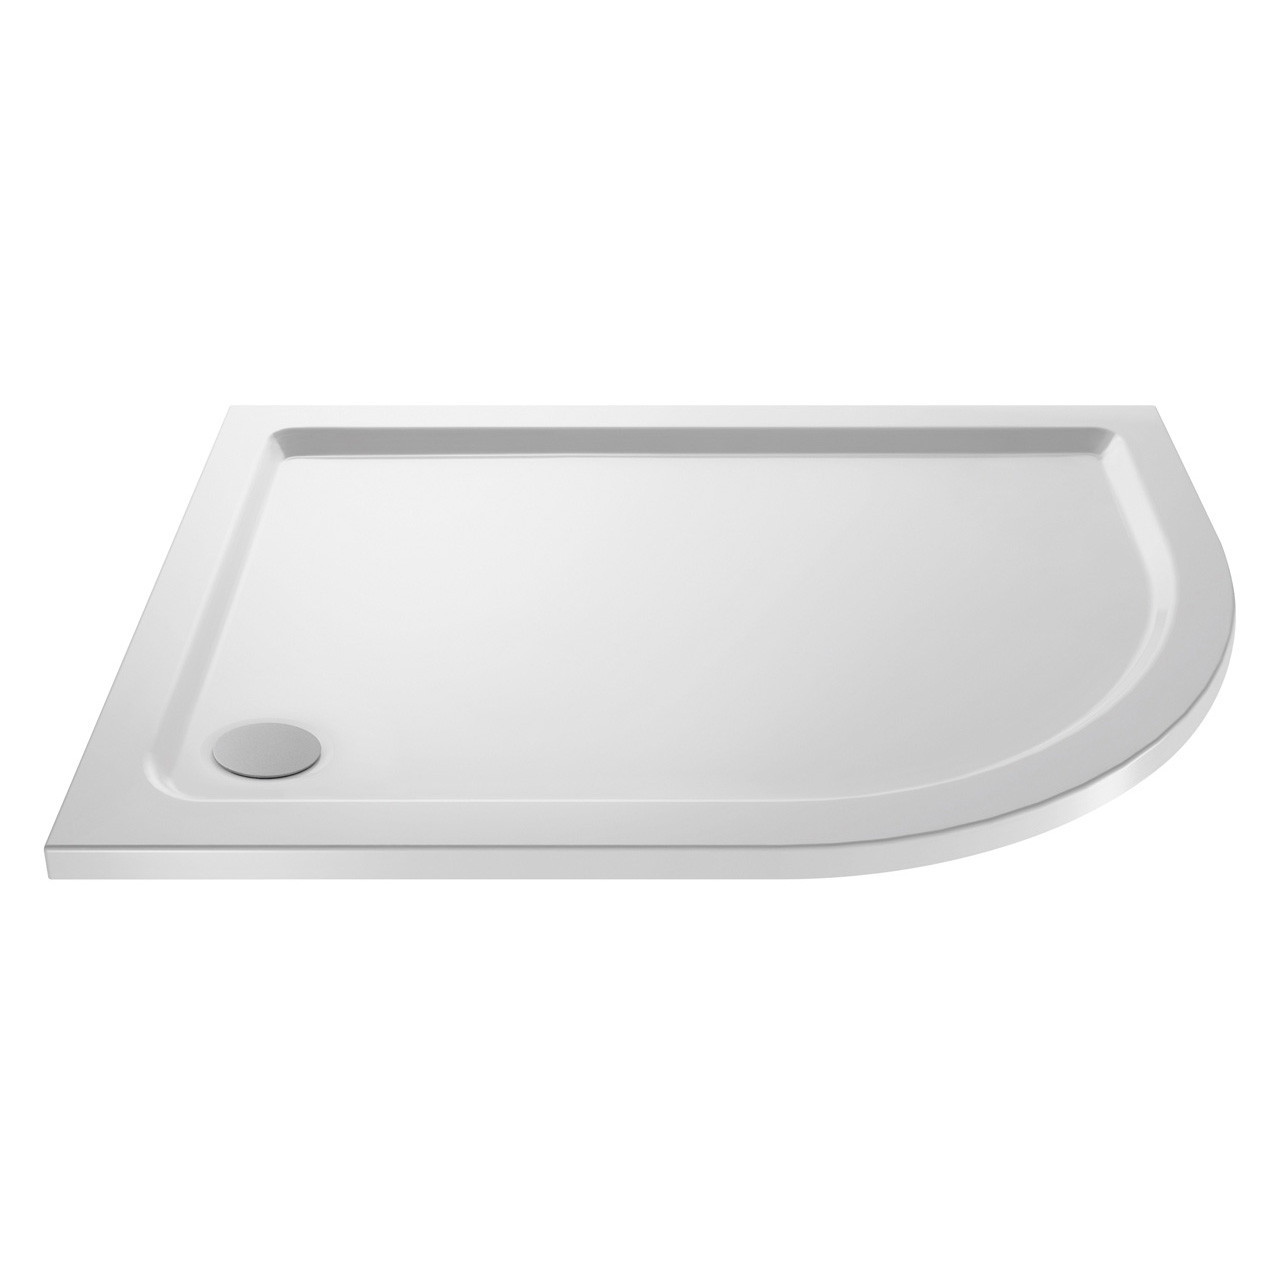 Premier Pearlstone Right Hand Offset Shower Tray 900mm x 800mm x 40mm - NTP104